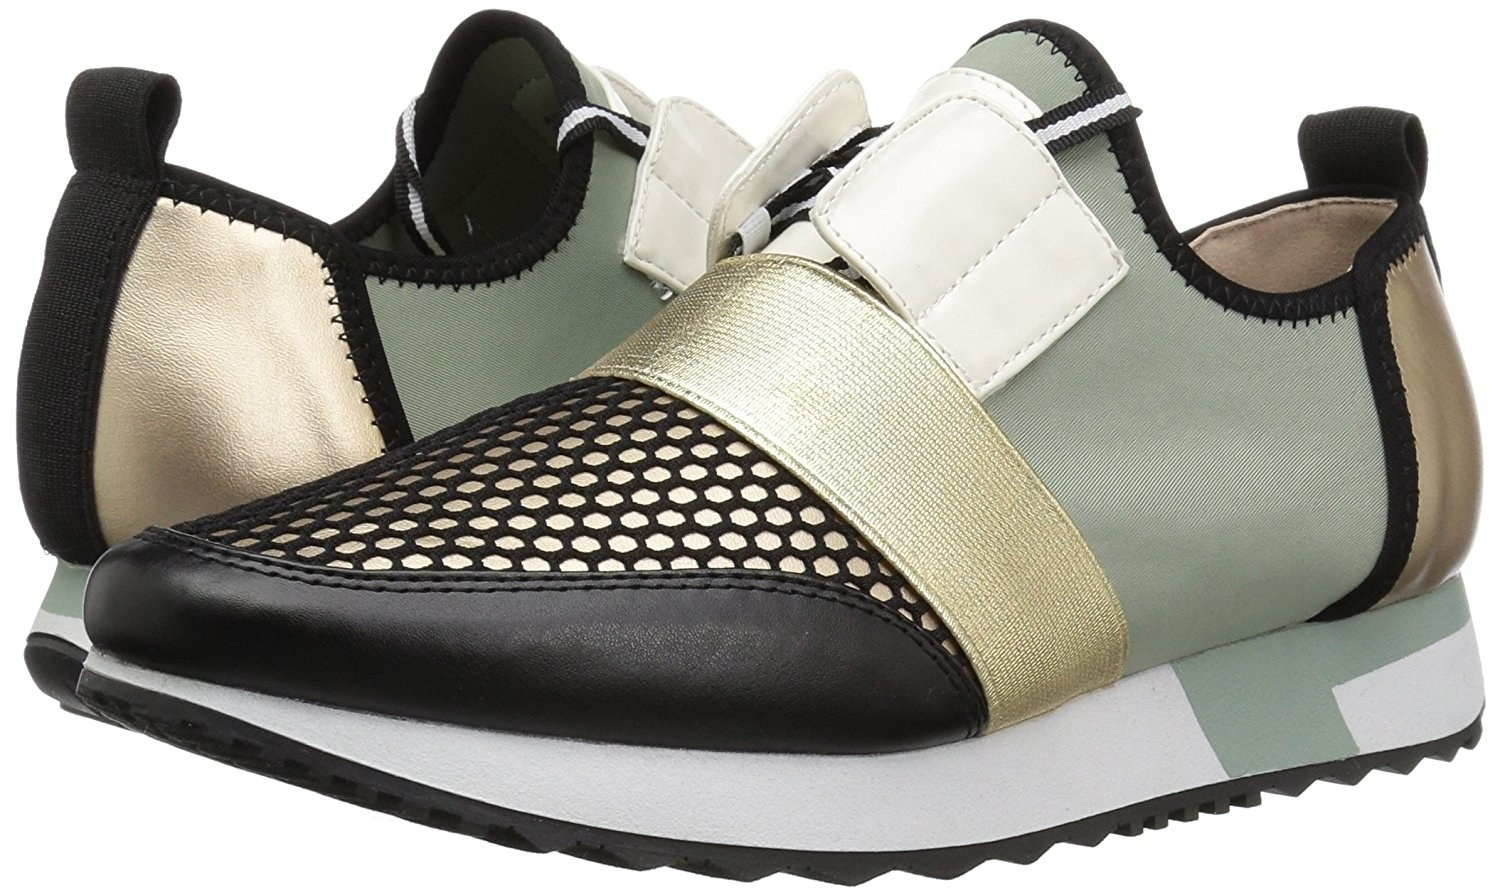 e03f1af2e2d55 21 Of The Best Pairs Of Fashion Sneakers You Can Get On Amazon